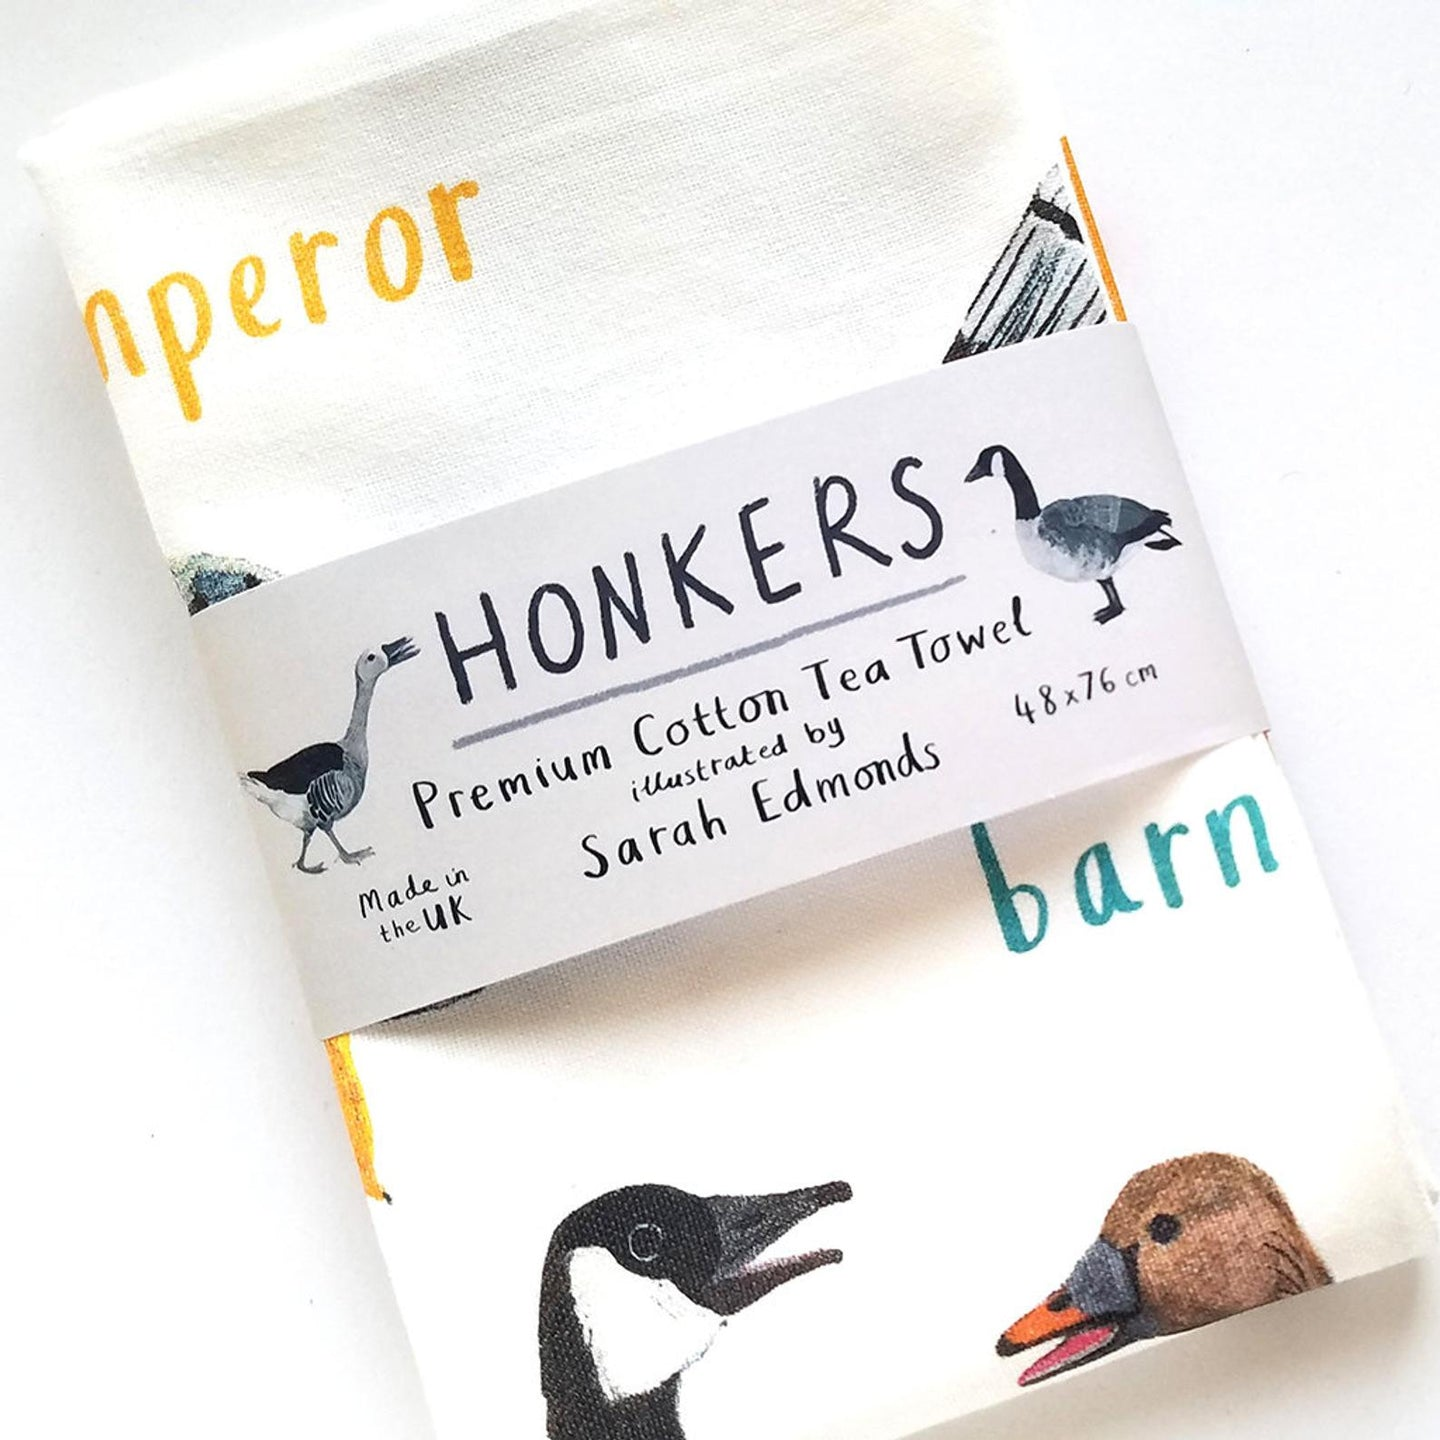 Honkers Tea Towel (COMING SOON!)